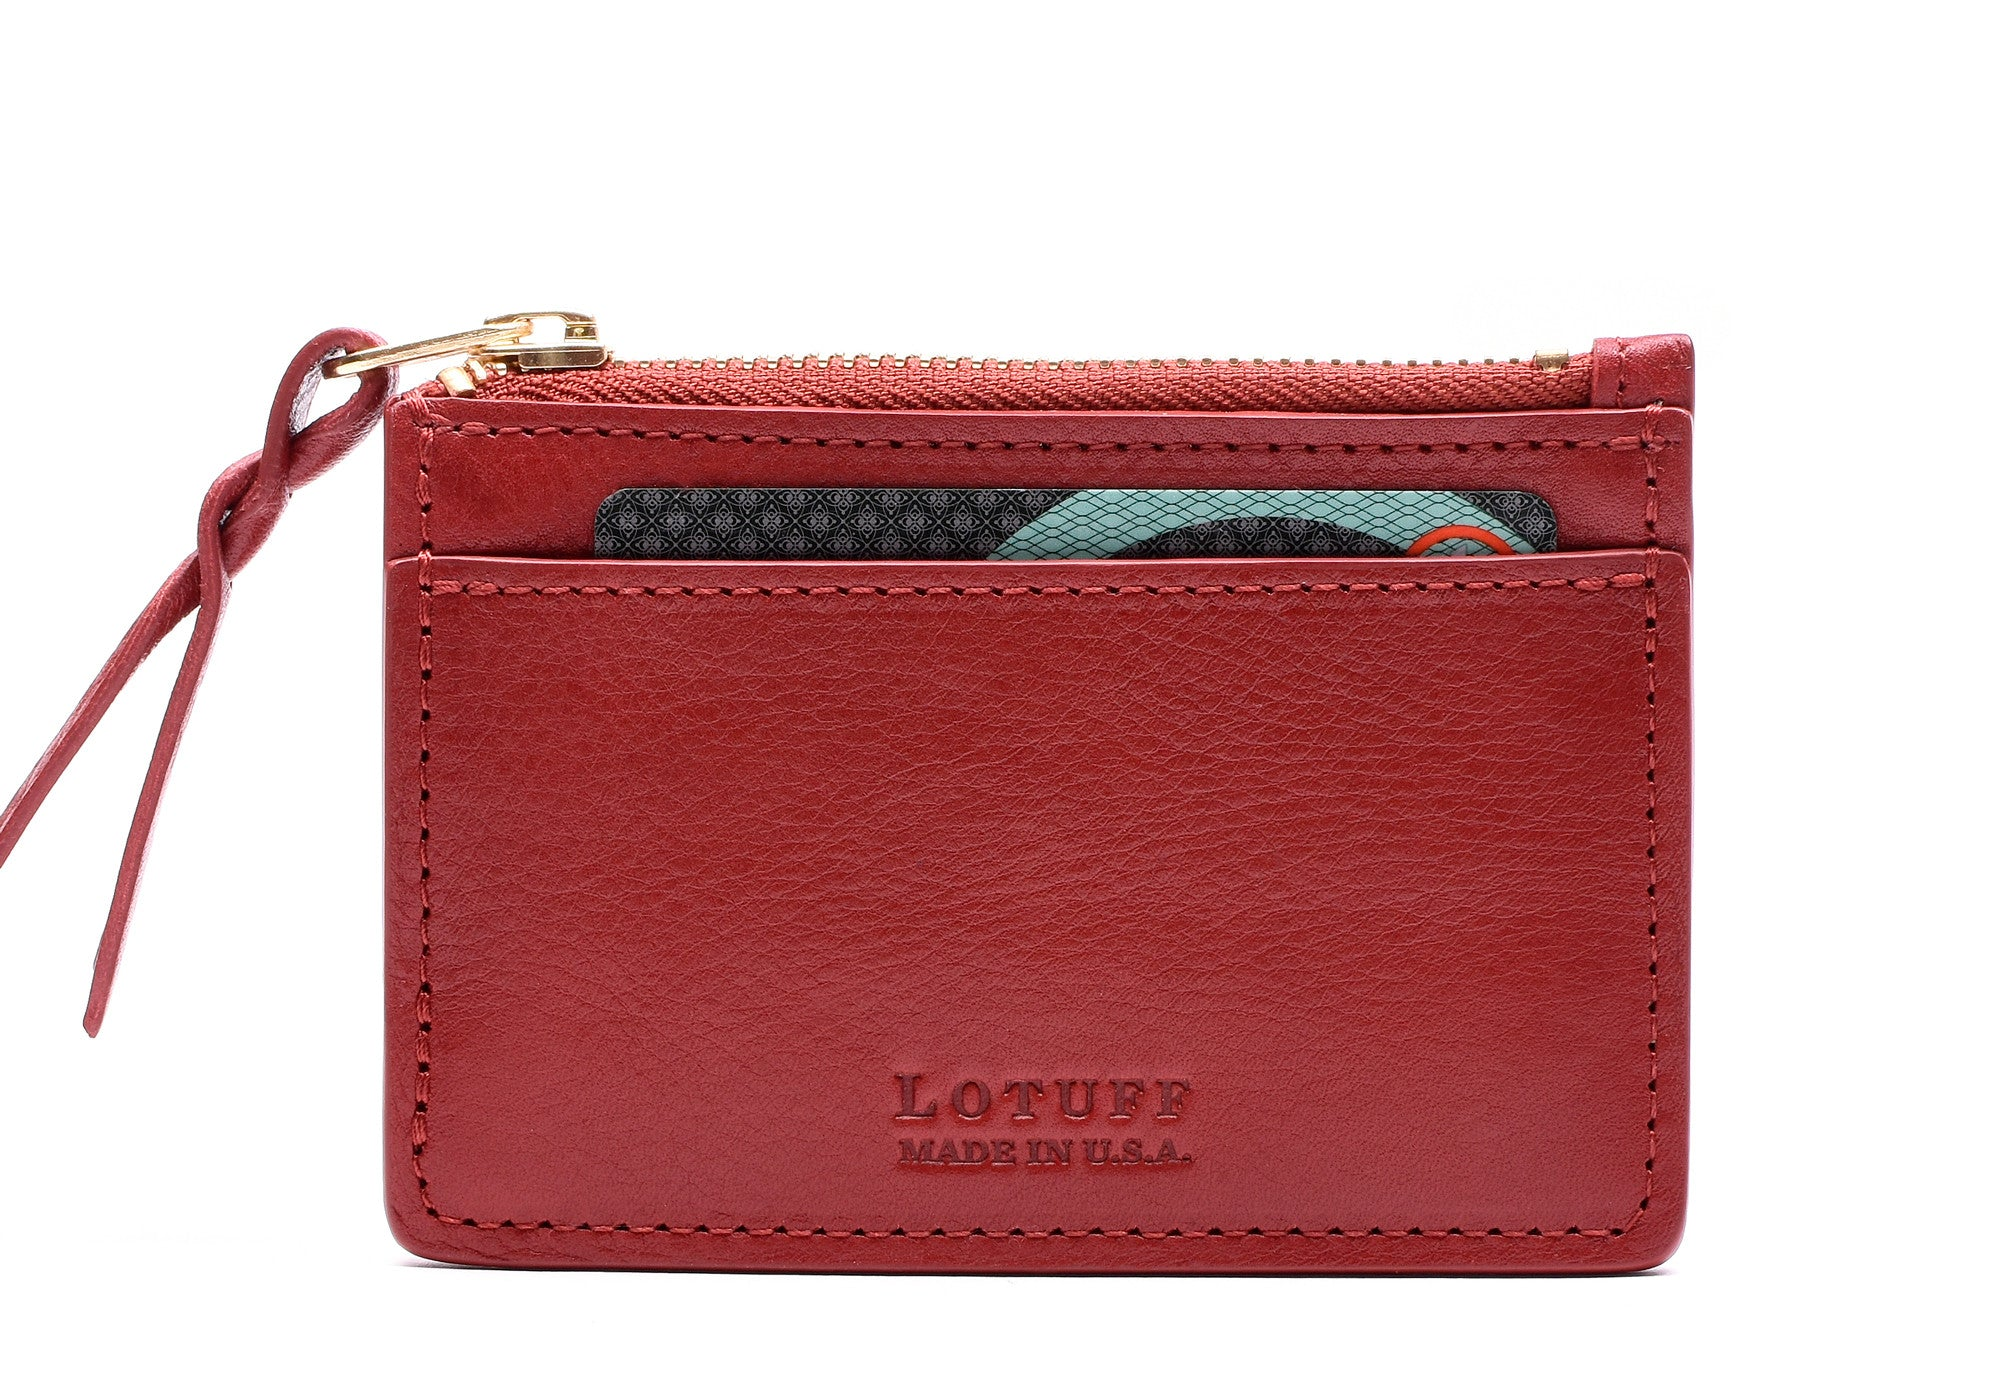 Front View of Zipper Credit Card Wallet Red